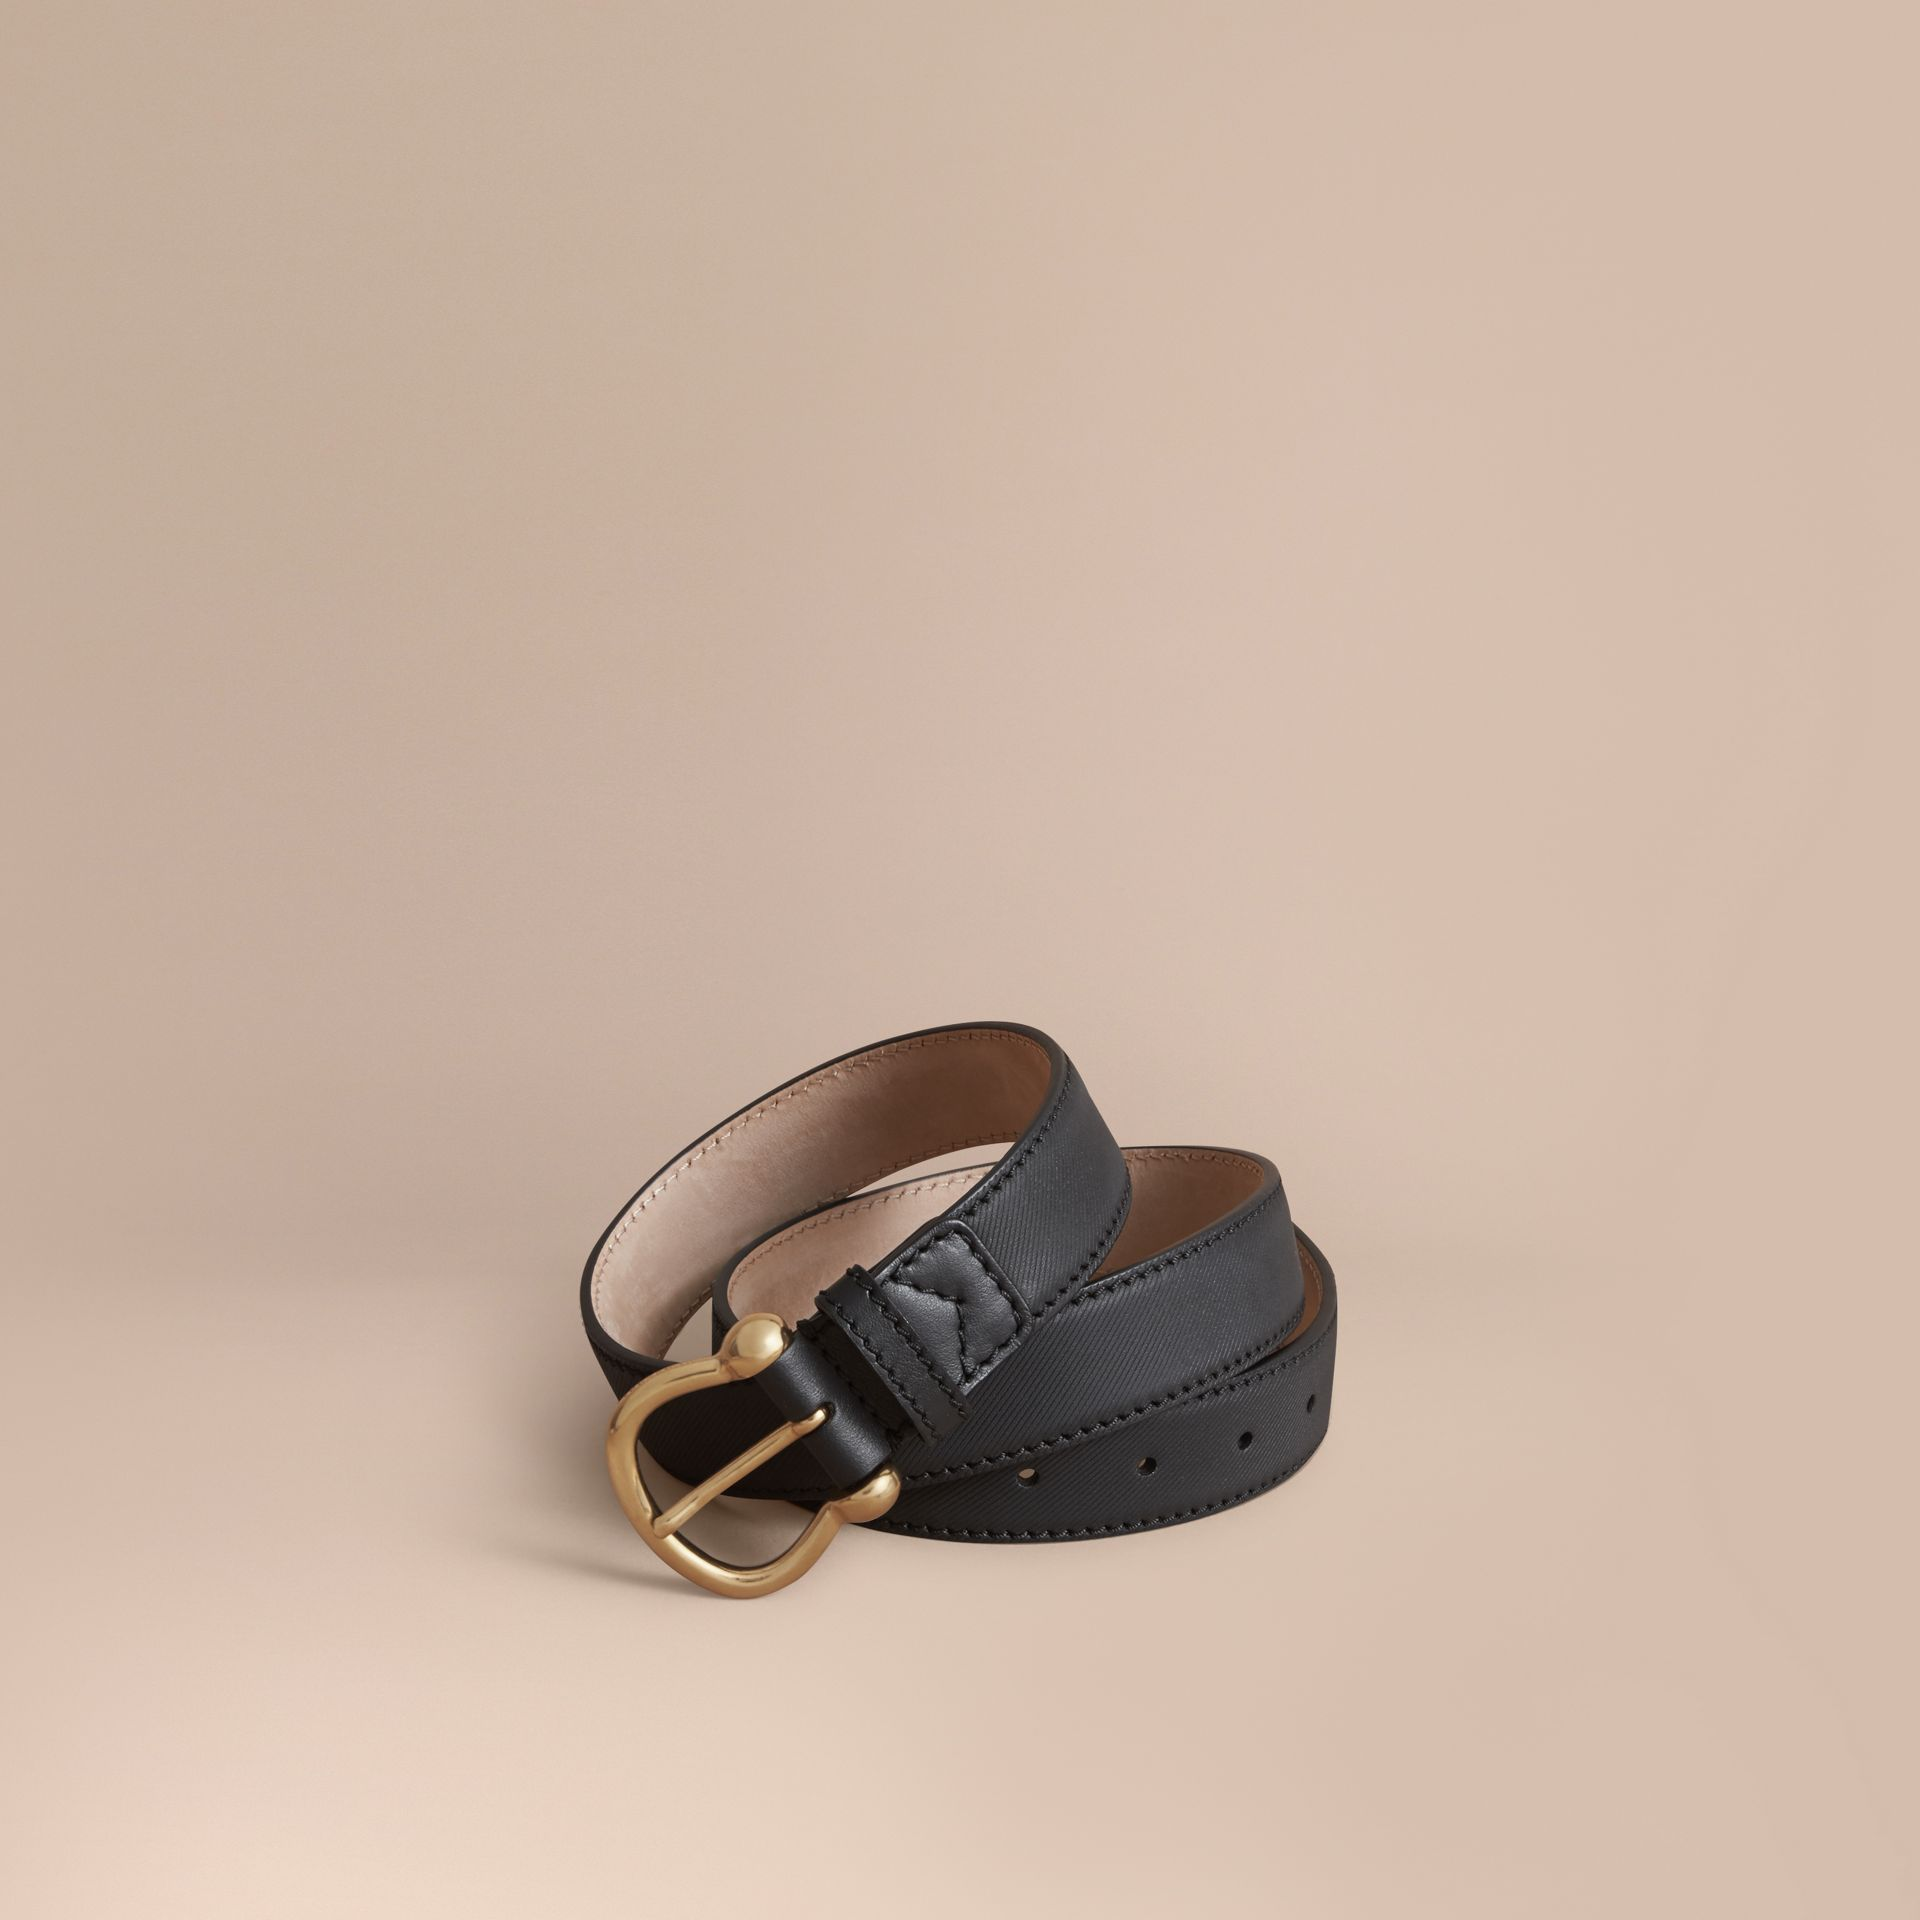 Trench Leather Belt in Black - Women | Burberry - gallery image 1